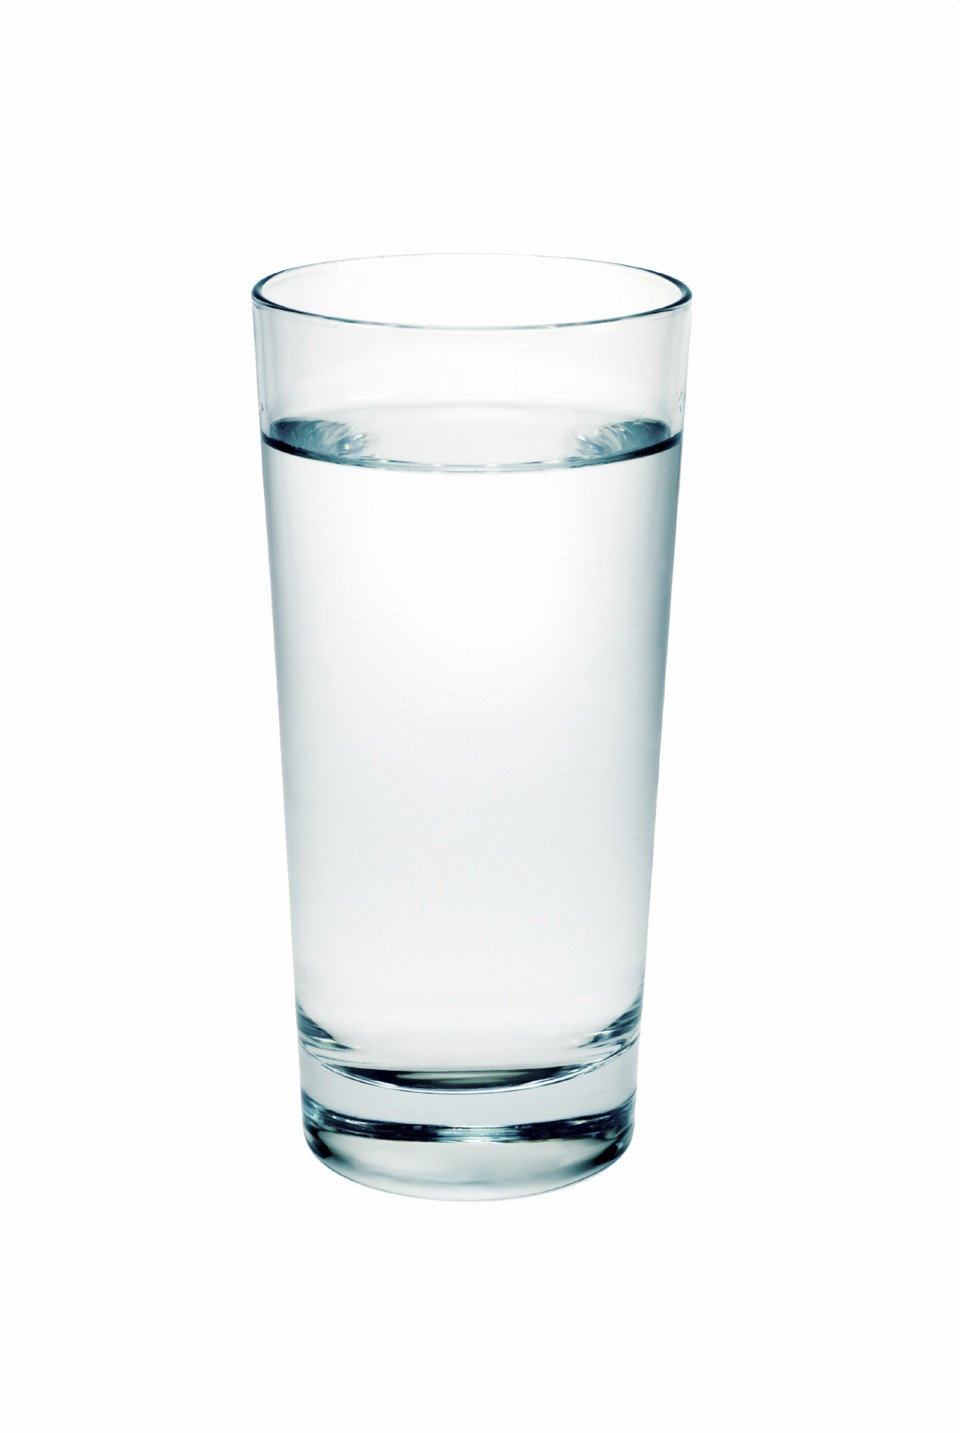 Also I challenge you to drink a glass of water before each meal and after! Eat your regular portions but drink a full glass and see how much less you eat just by this simple tip.